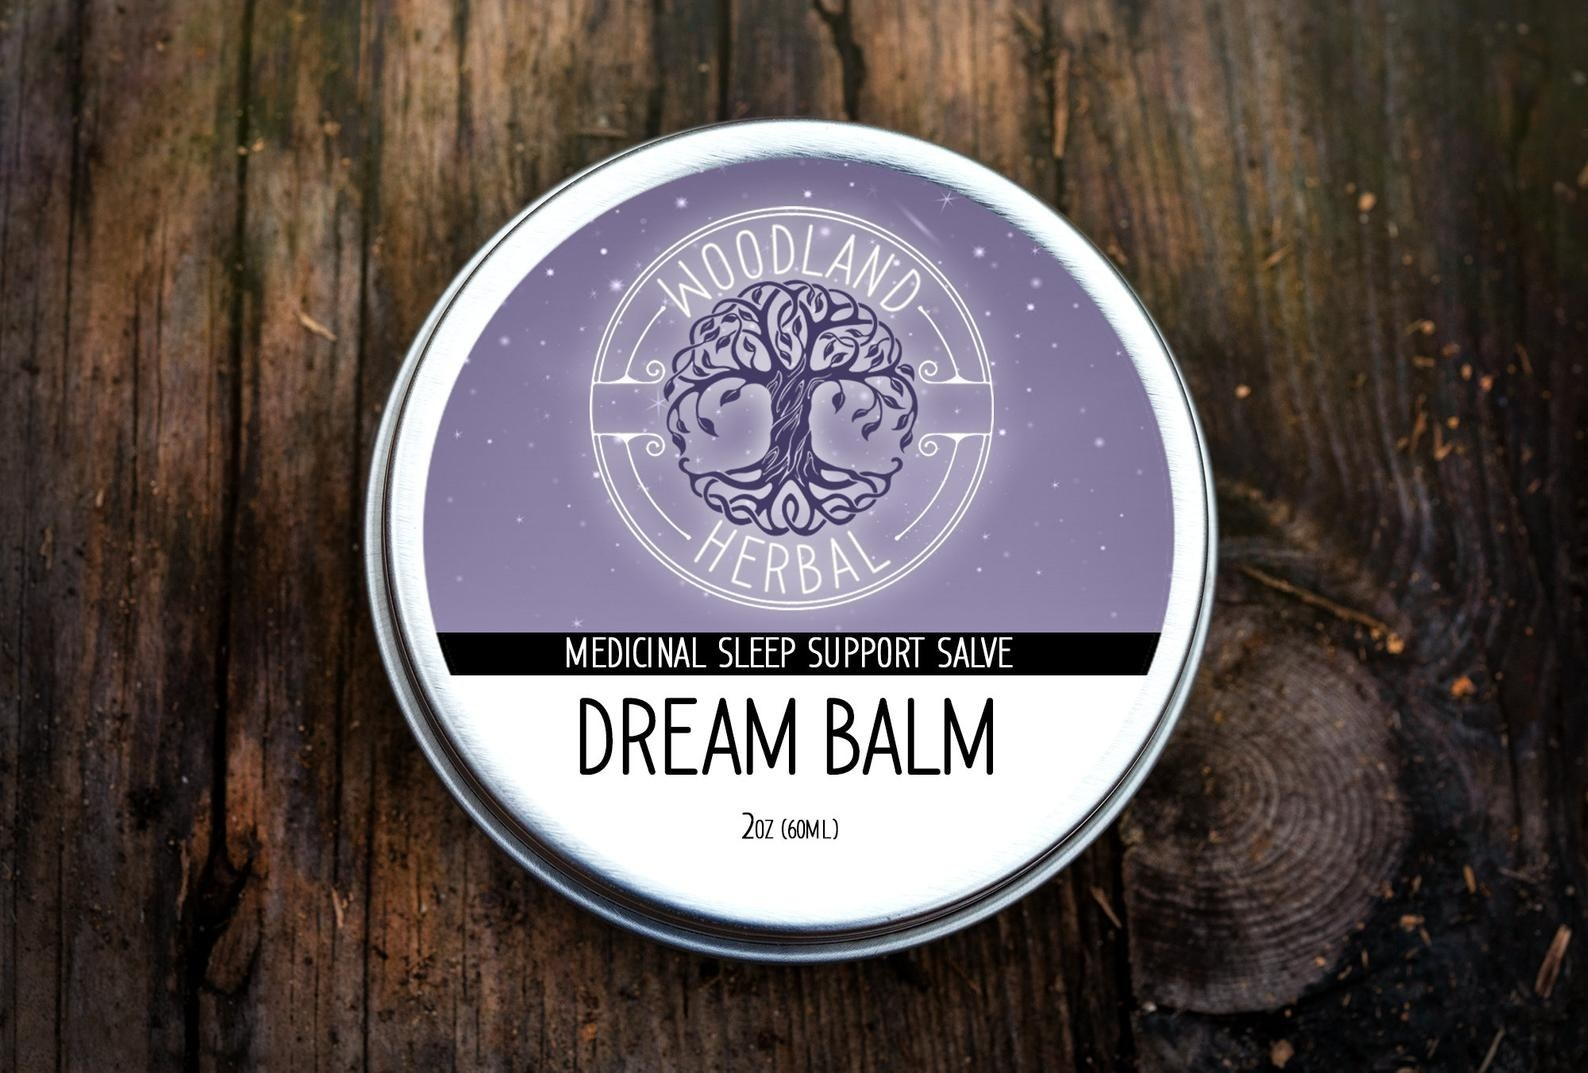 a tin of the dream balm in silver, white, and purple packaging